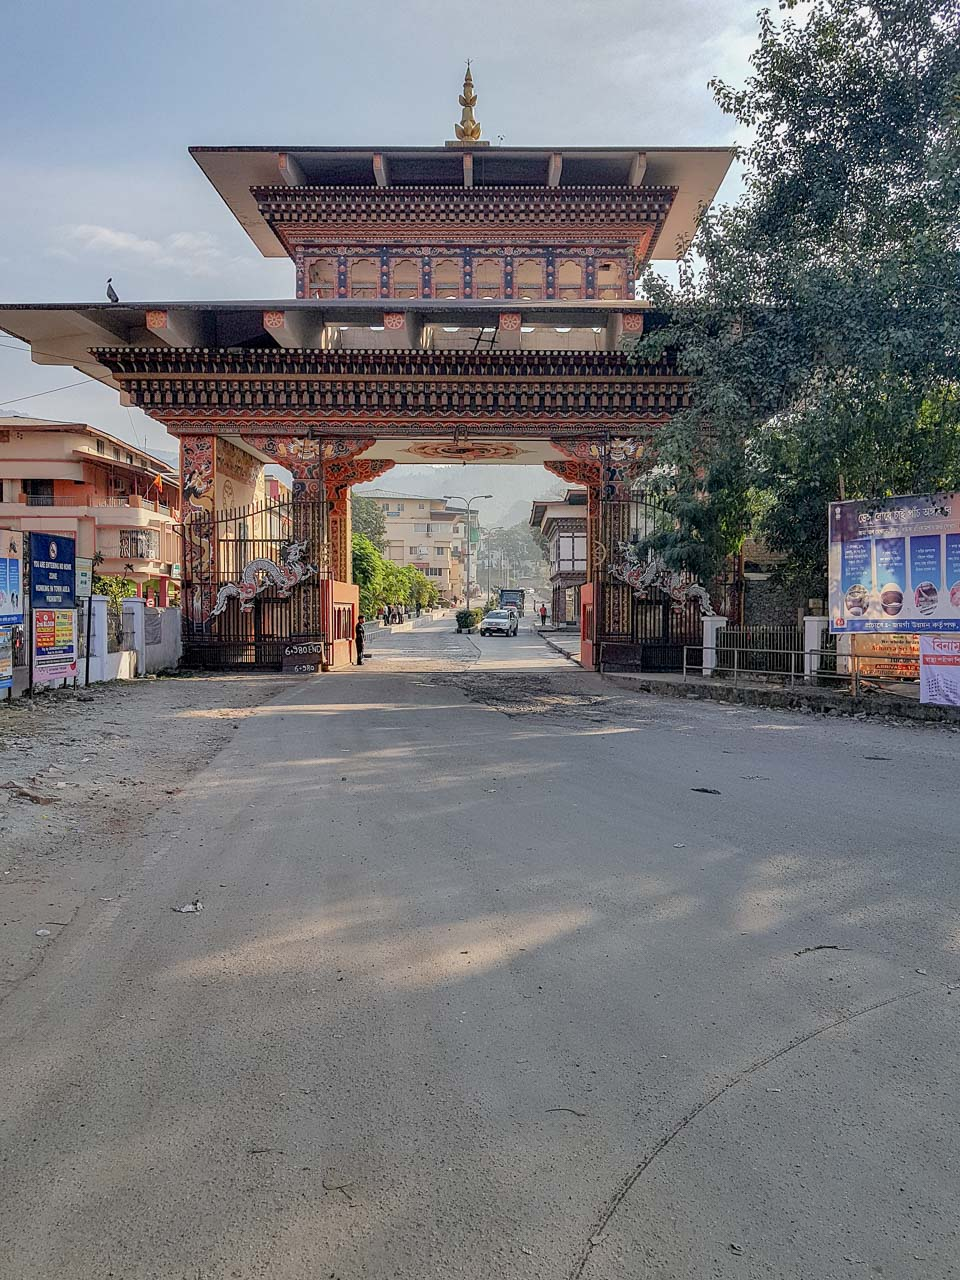 The Gate that separates India from Bhutan